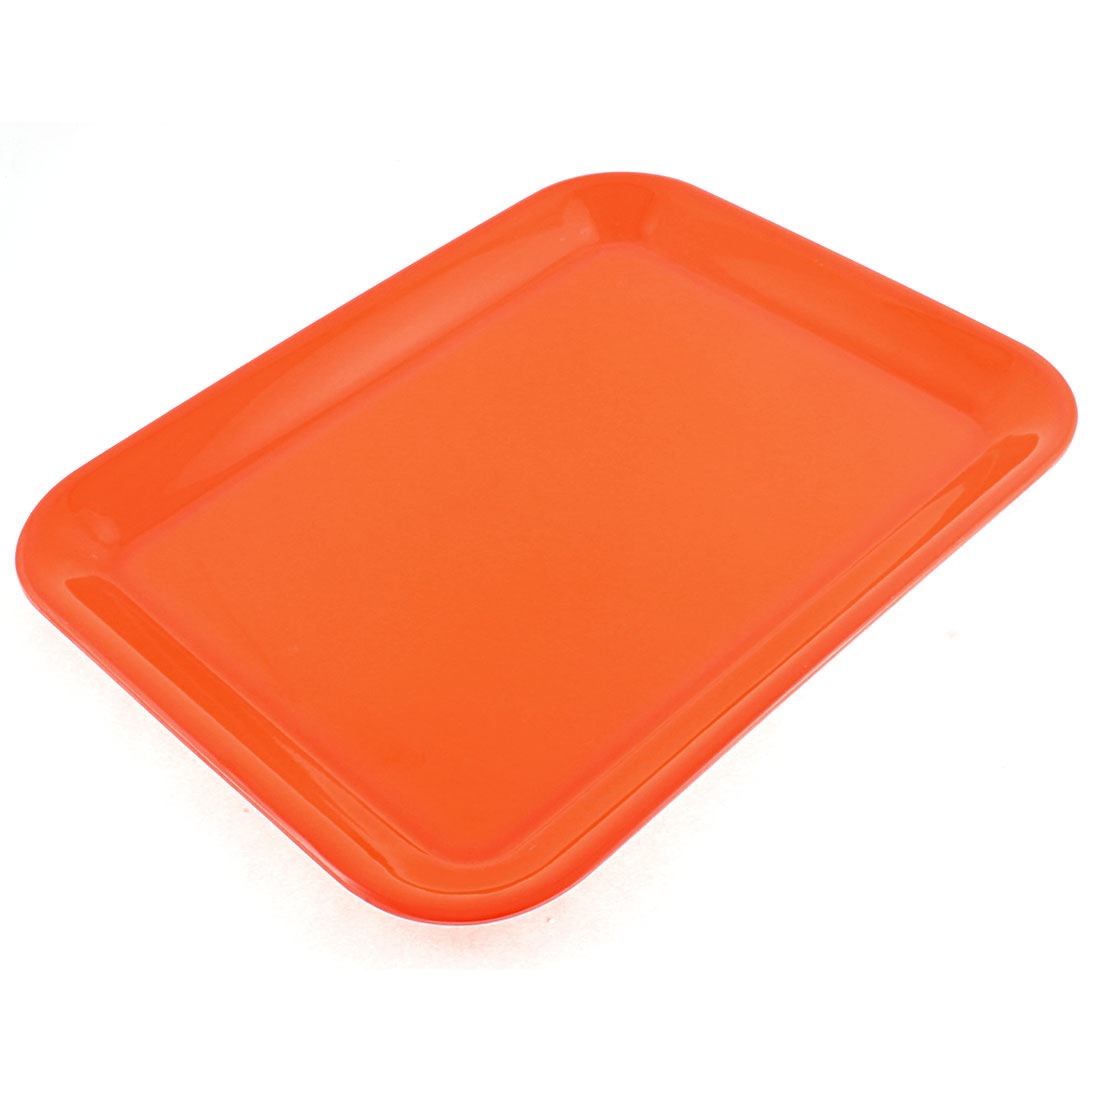 "Restaurant Plastic Rectangle Shaped Serving Tray Orange 13"" Length"